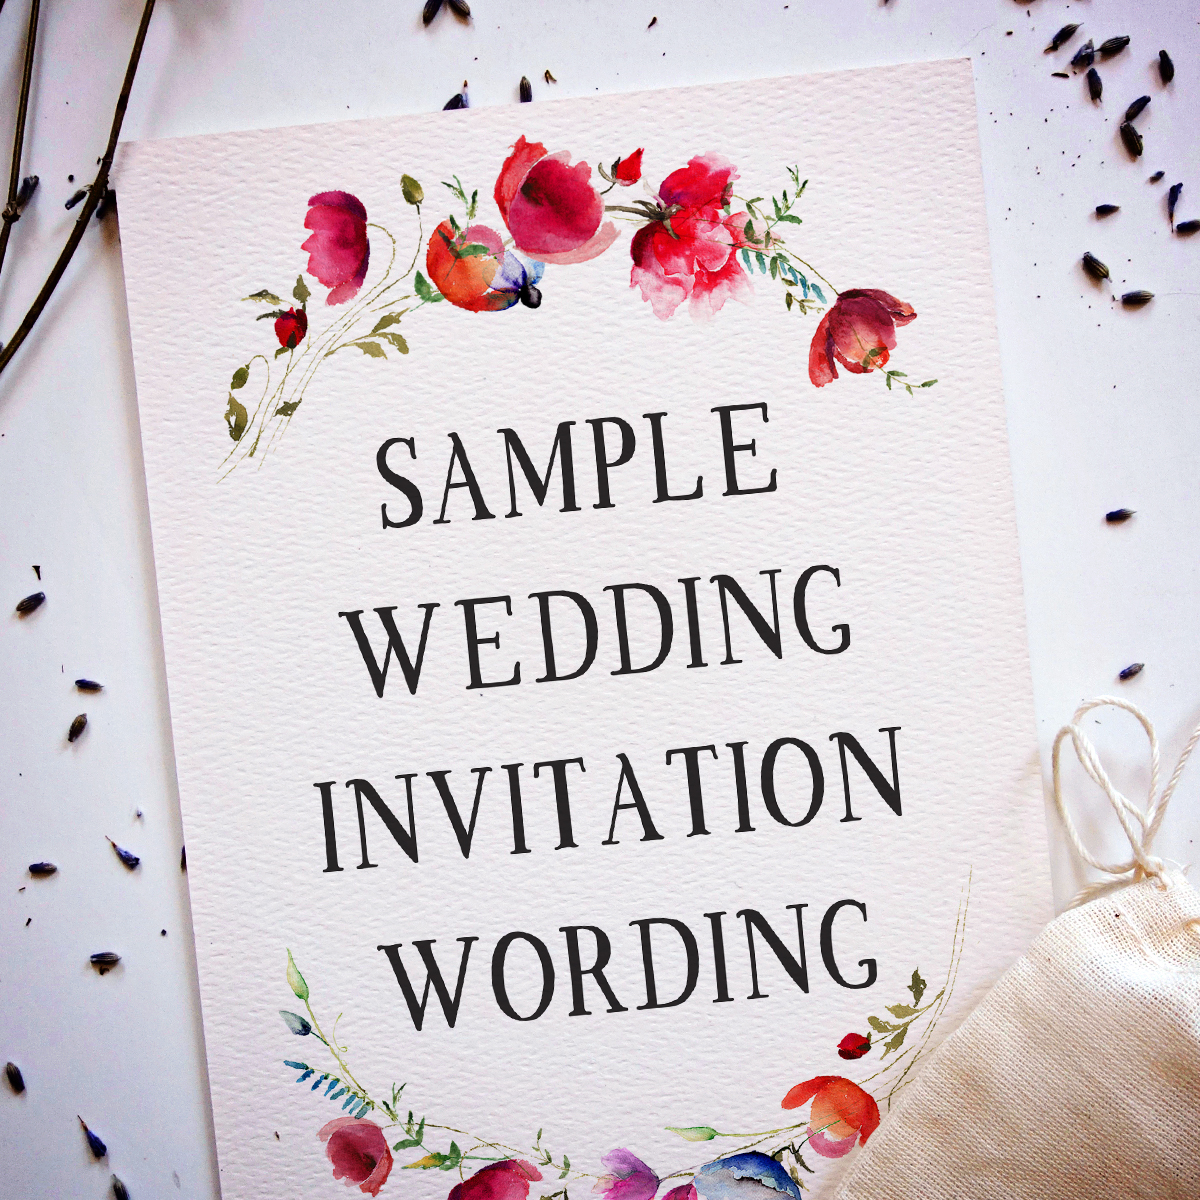 wedding invitation wording samples wedding invitations examples 15 Examples of Wedding Invitation Wording You Can Steal A Practical Wedding We re Your Wedding Planner Wedding Ideas for Brides Bridesmaids Grooms